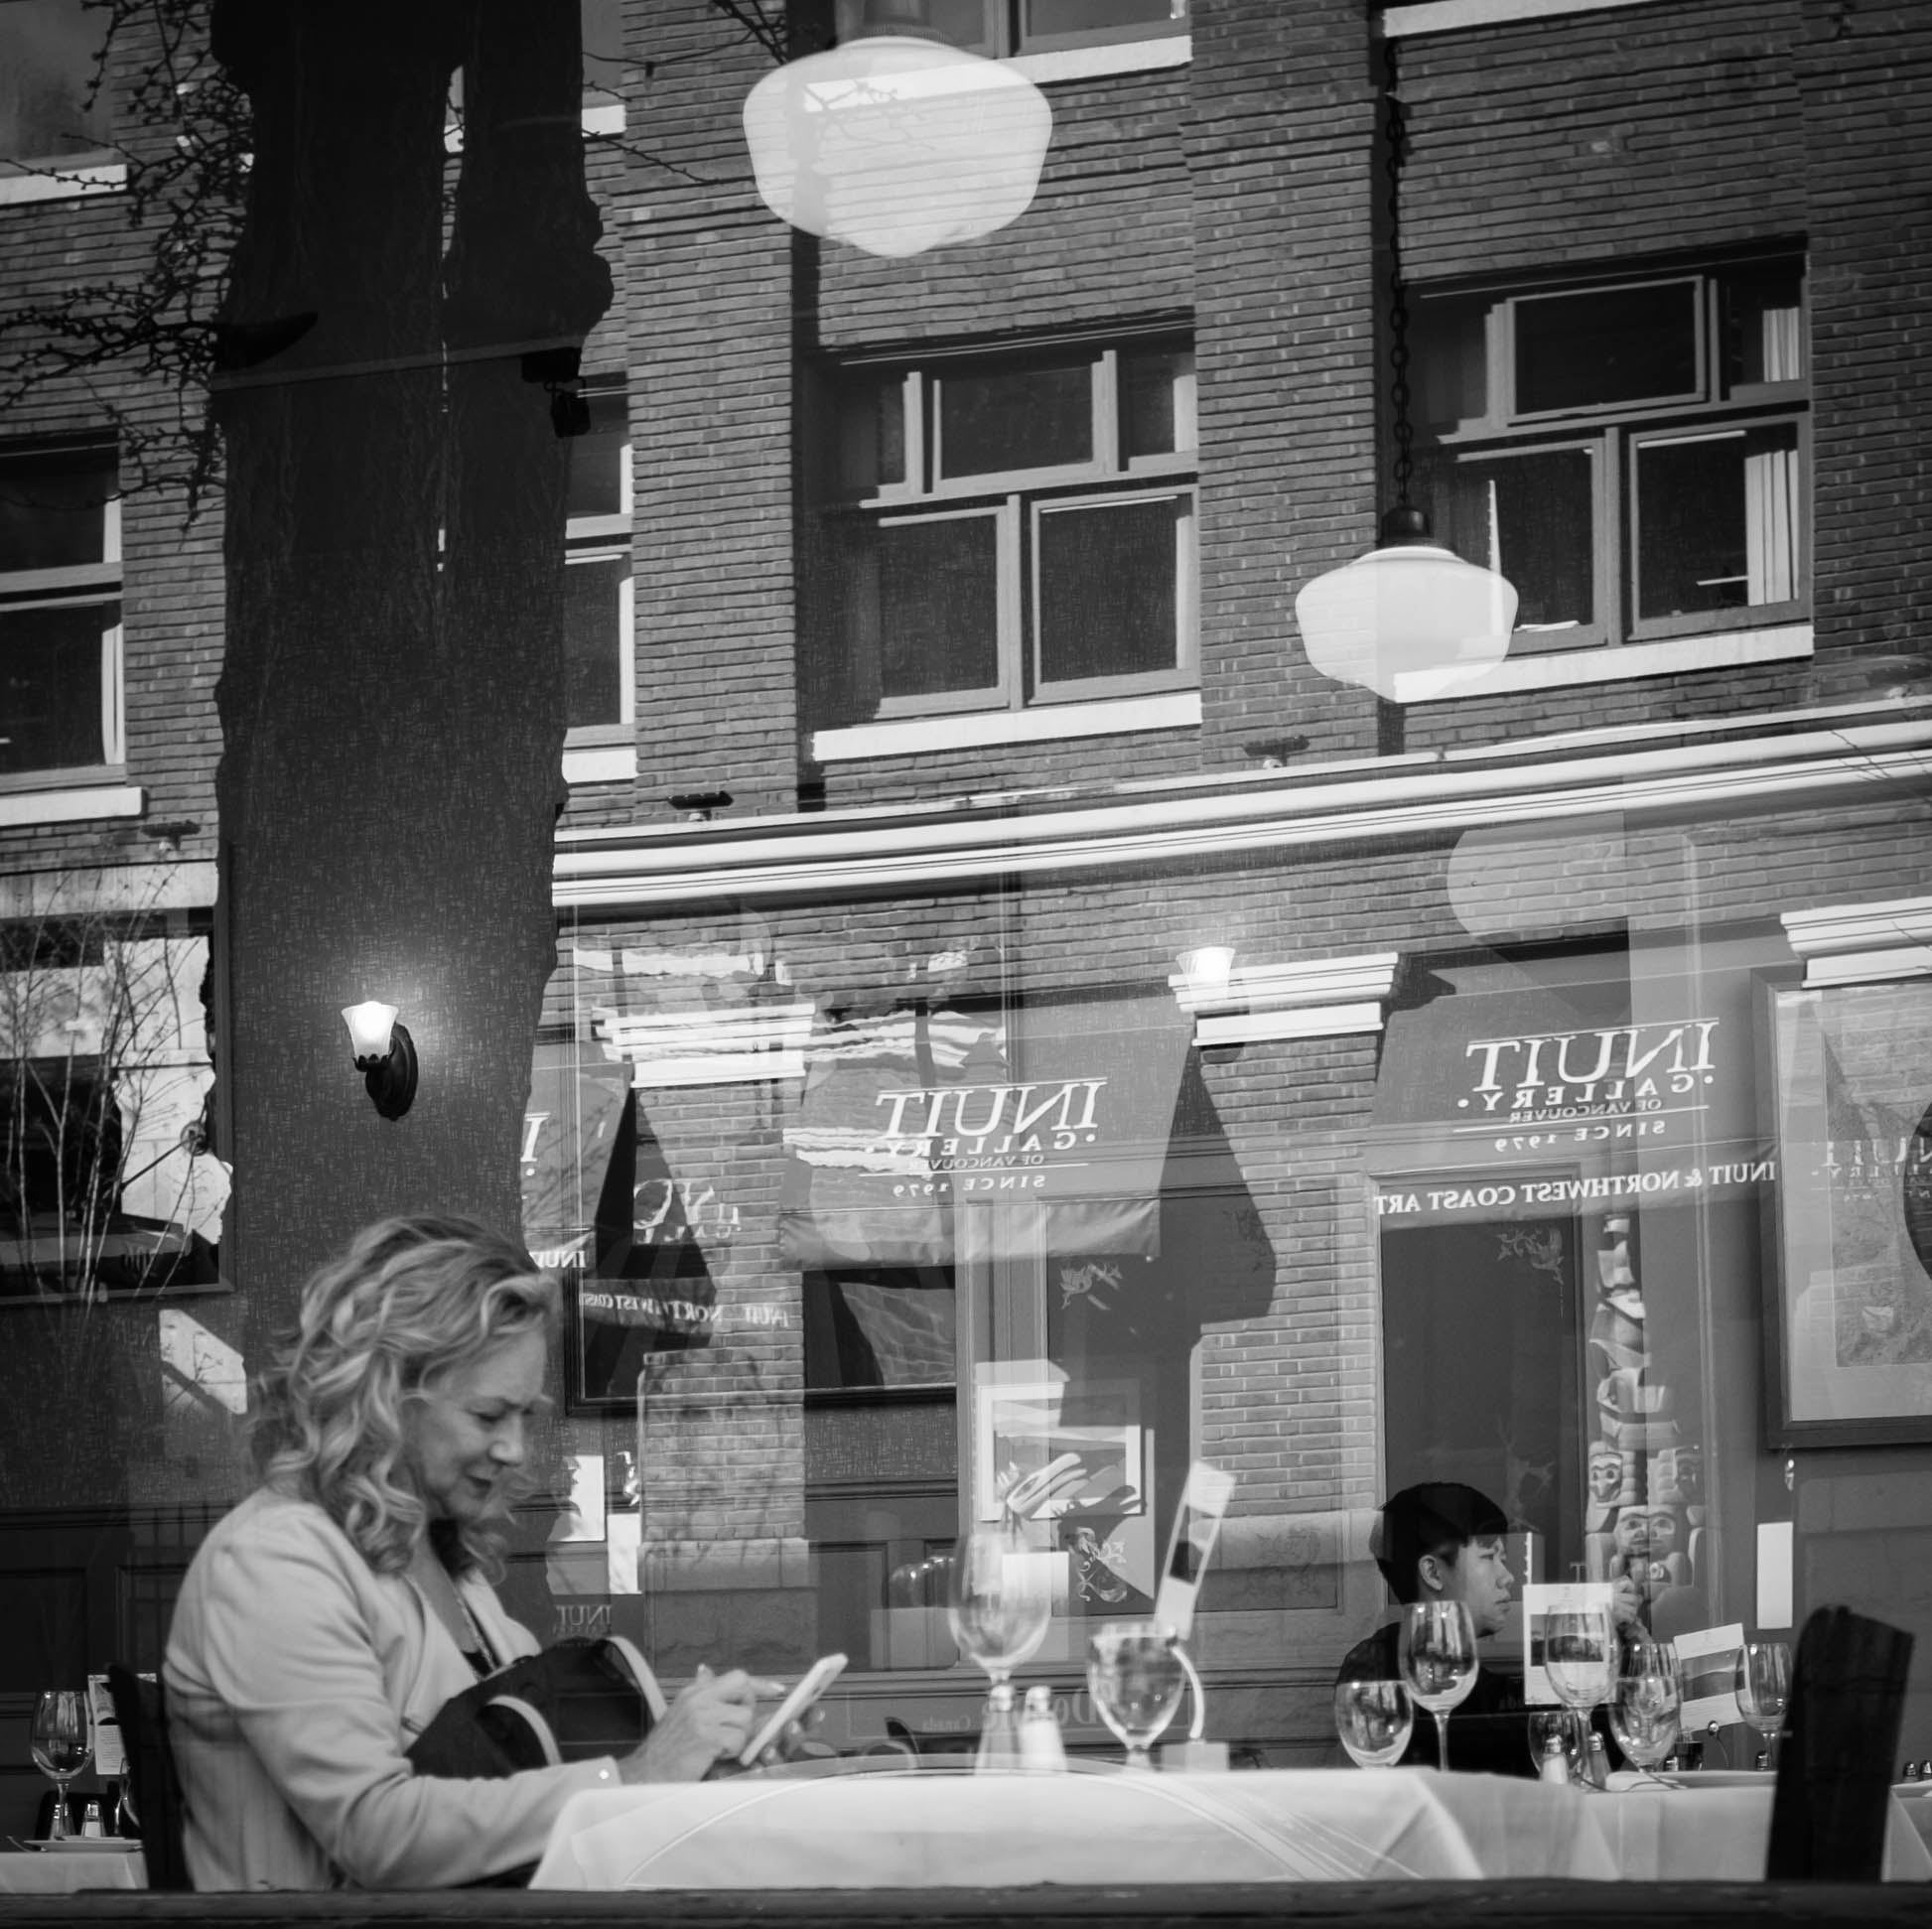 Woman in window with reflections Gastown, Vancouver Fuji X100T 3.16